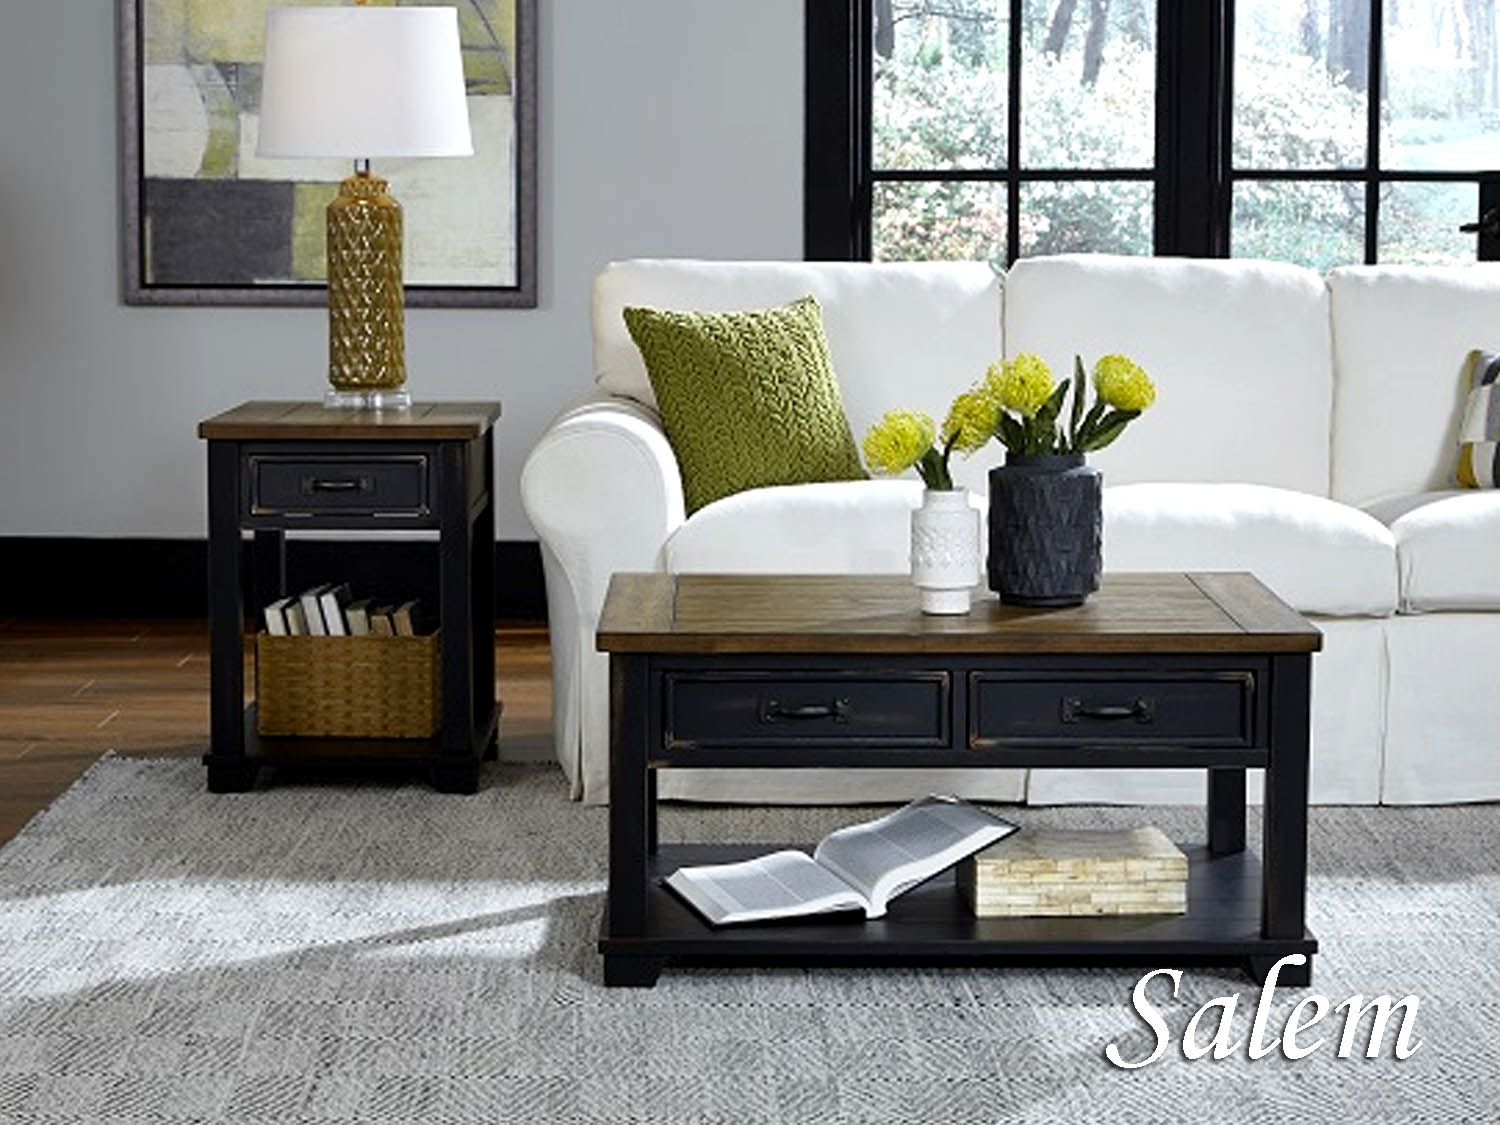 Barbo's Furniture, Salem, Living room, Family Room, Den, Occasional, Cape Cod, Coastal, Transitional, Casual, two tone, black, distressed, Cocktail, Coffee, End, Chairside, Sofa, Media, Table, Console